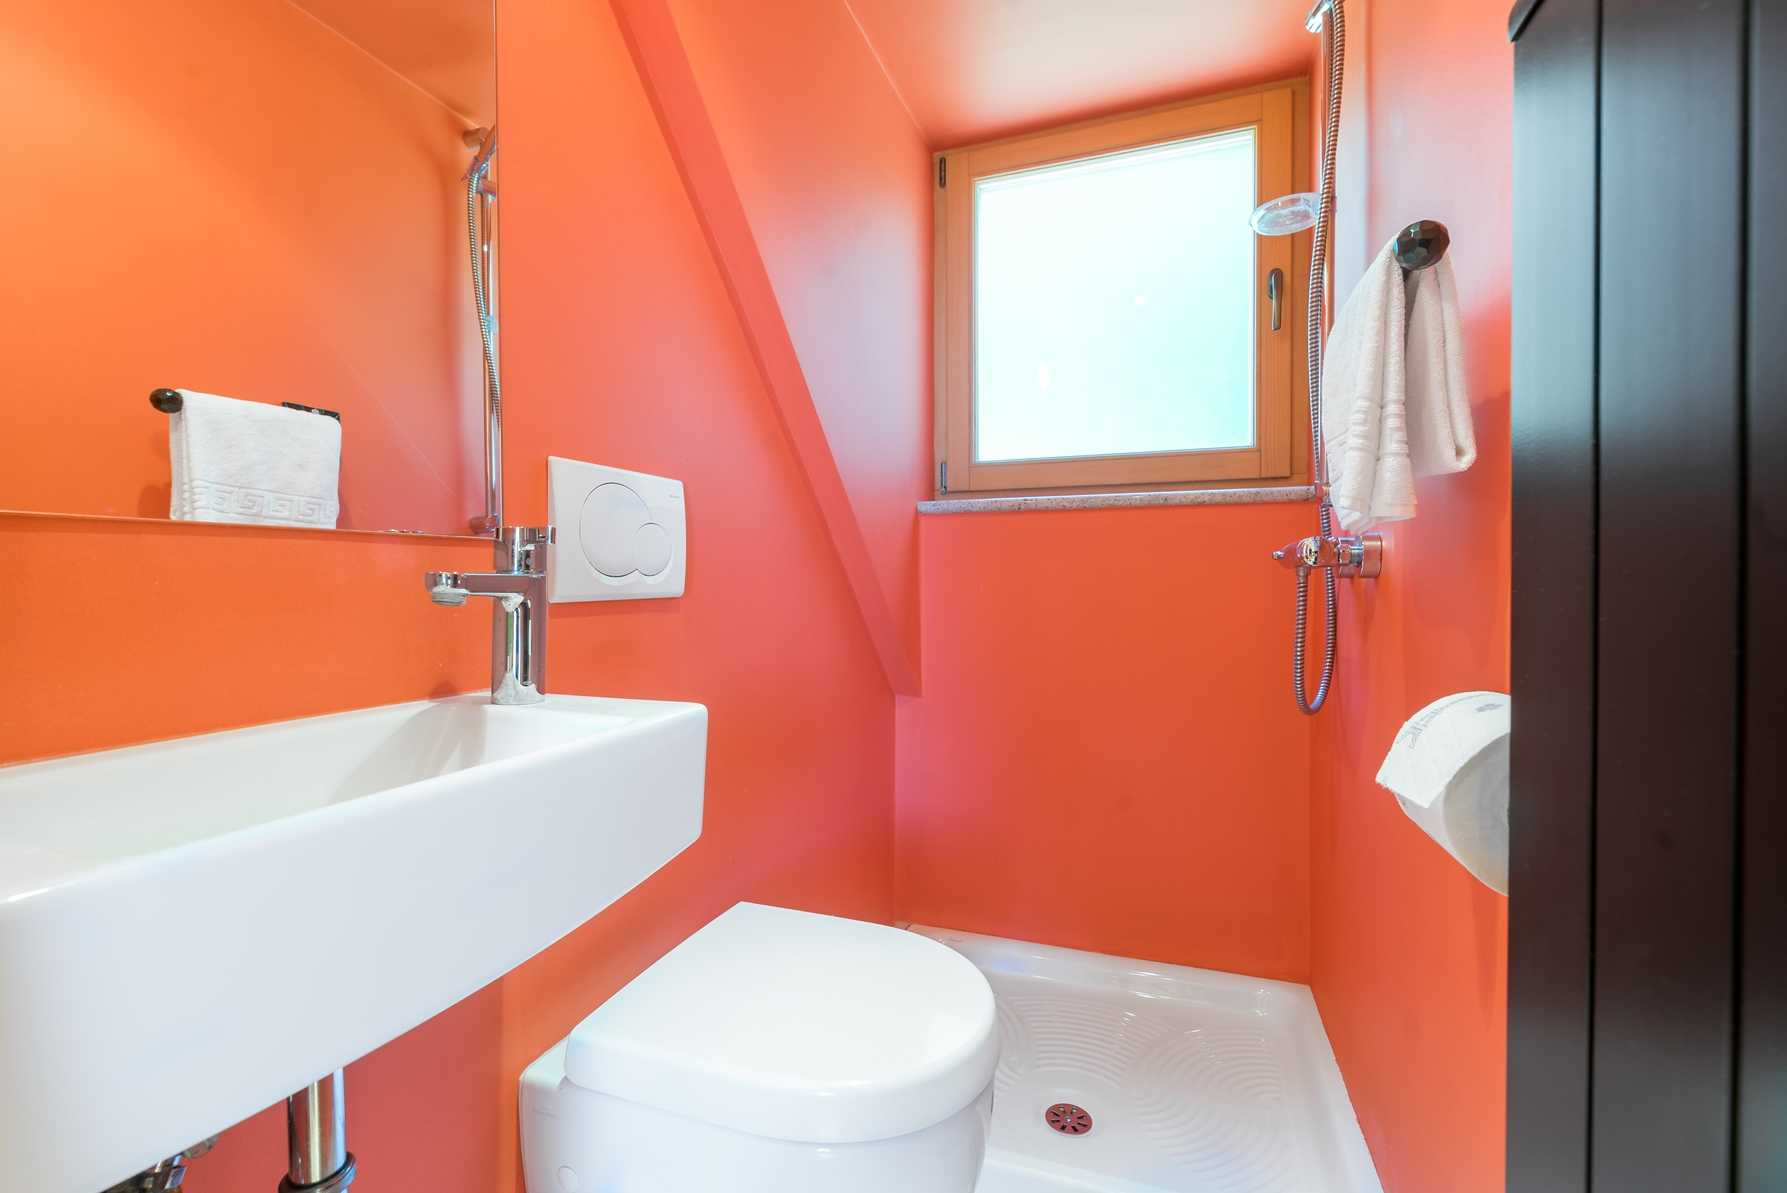 The bright orange bathroom features a walk in shower.